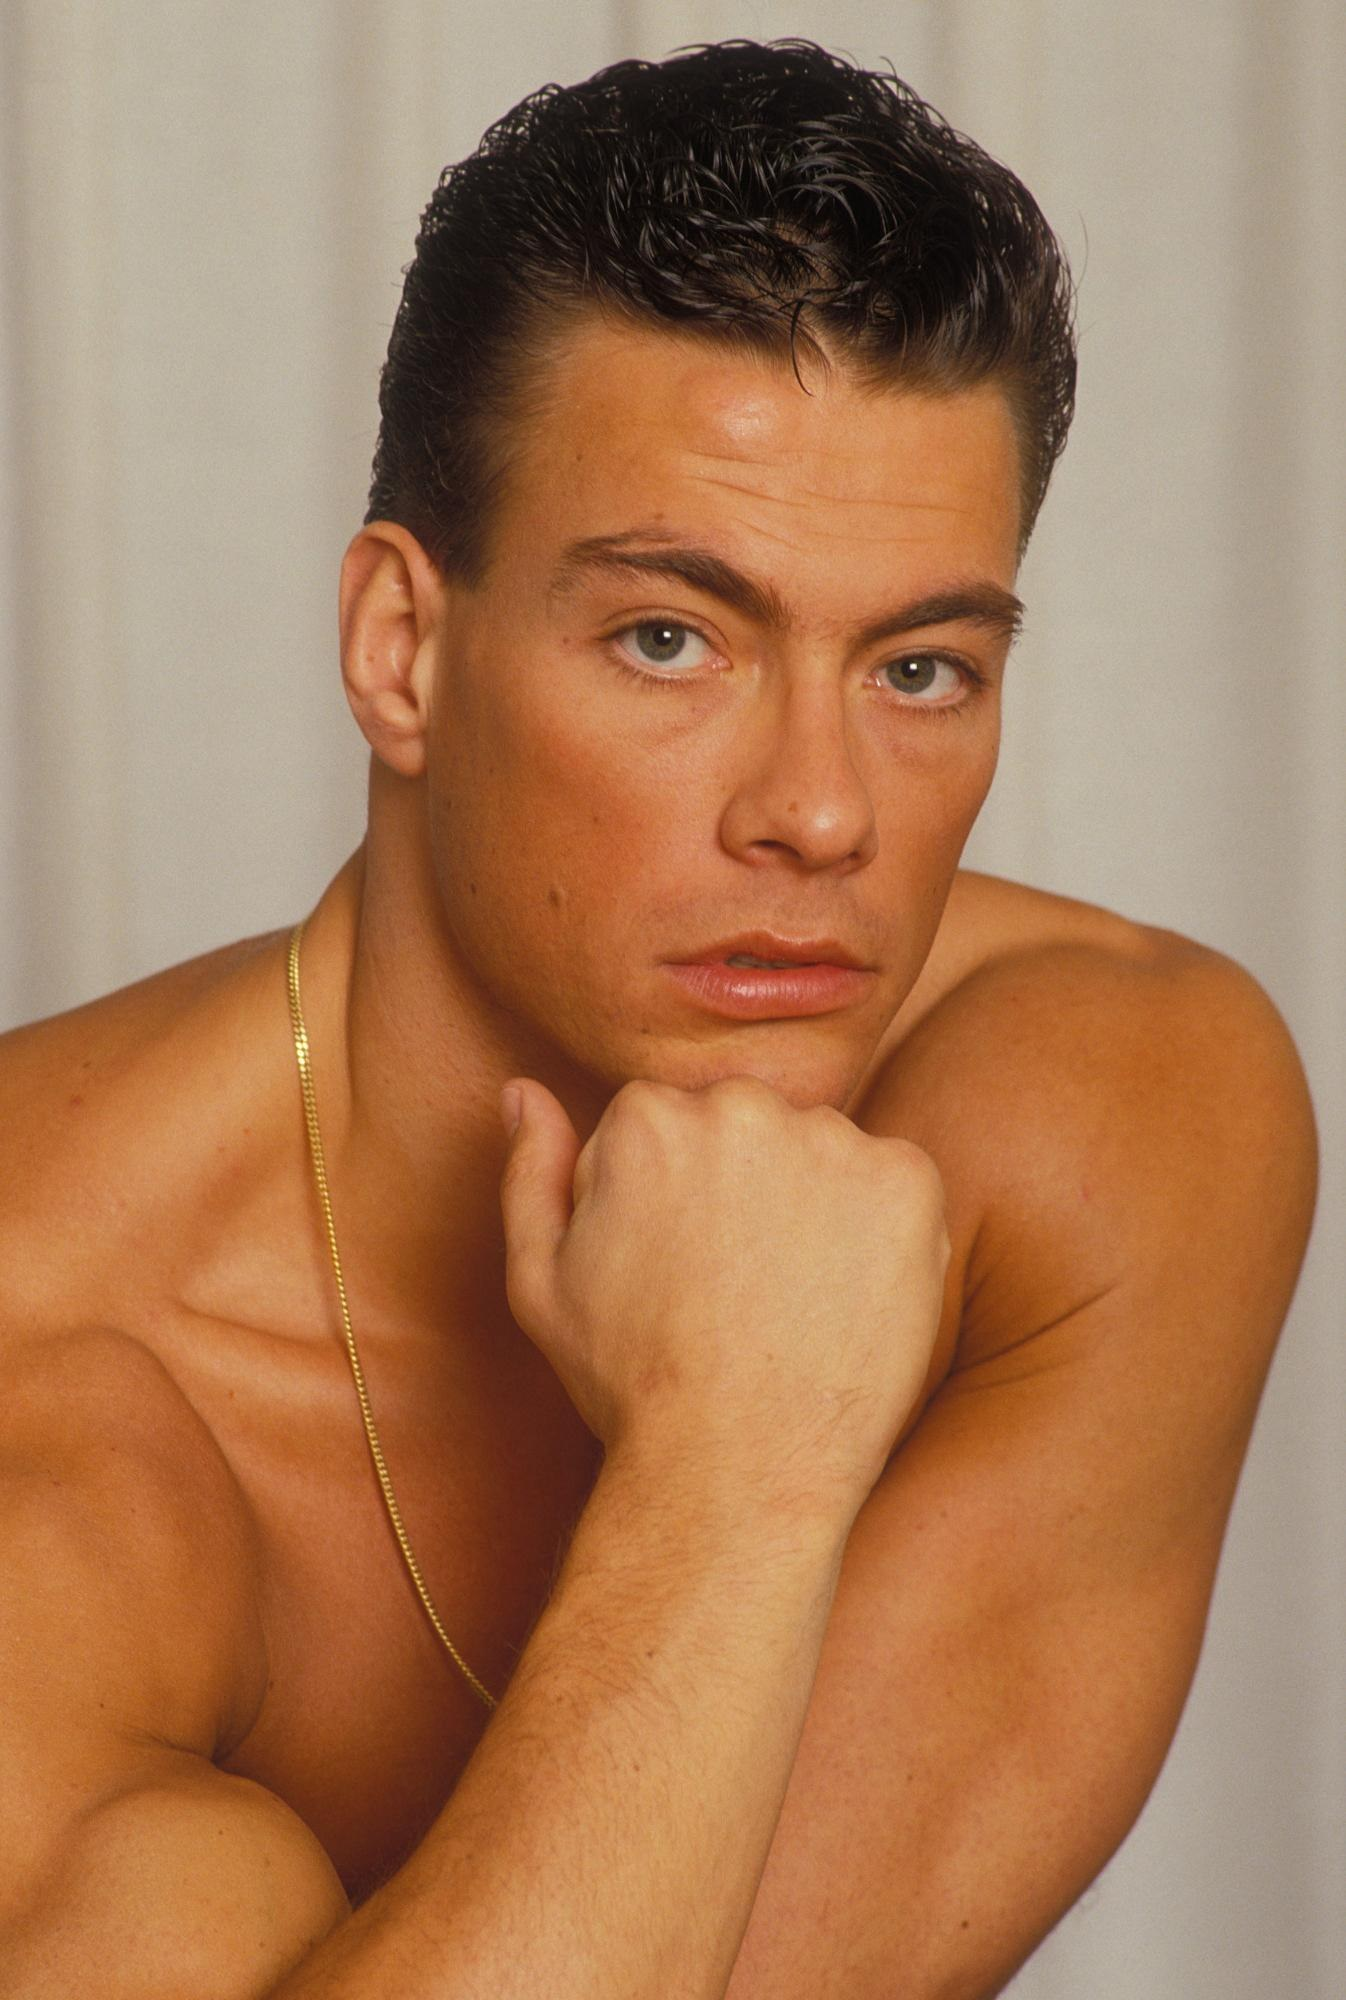 http://zinemaniacos.files.wordpress.com/2013/04/jean-claude-van-damme-9.jpg